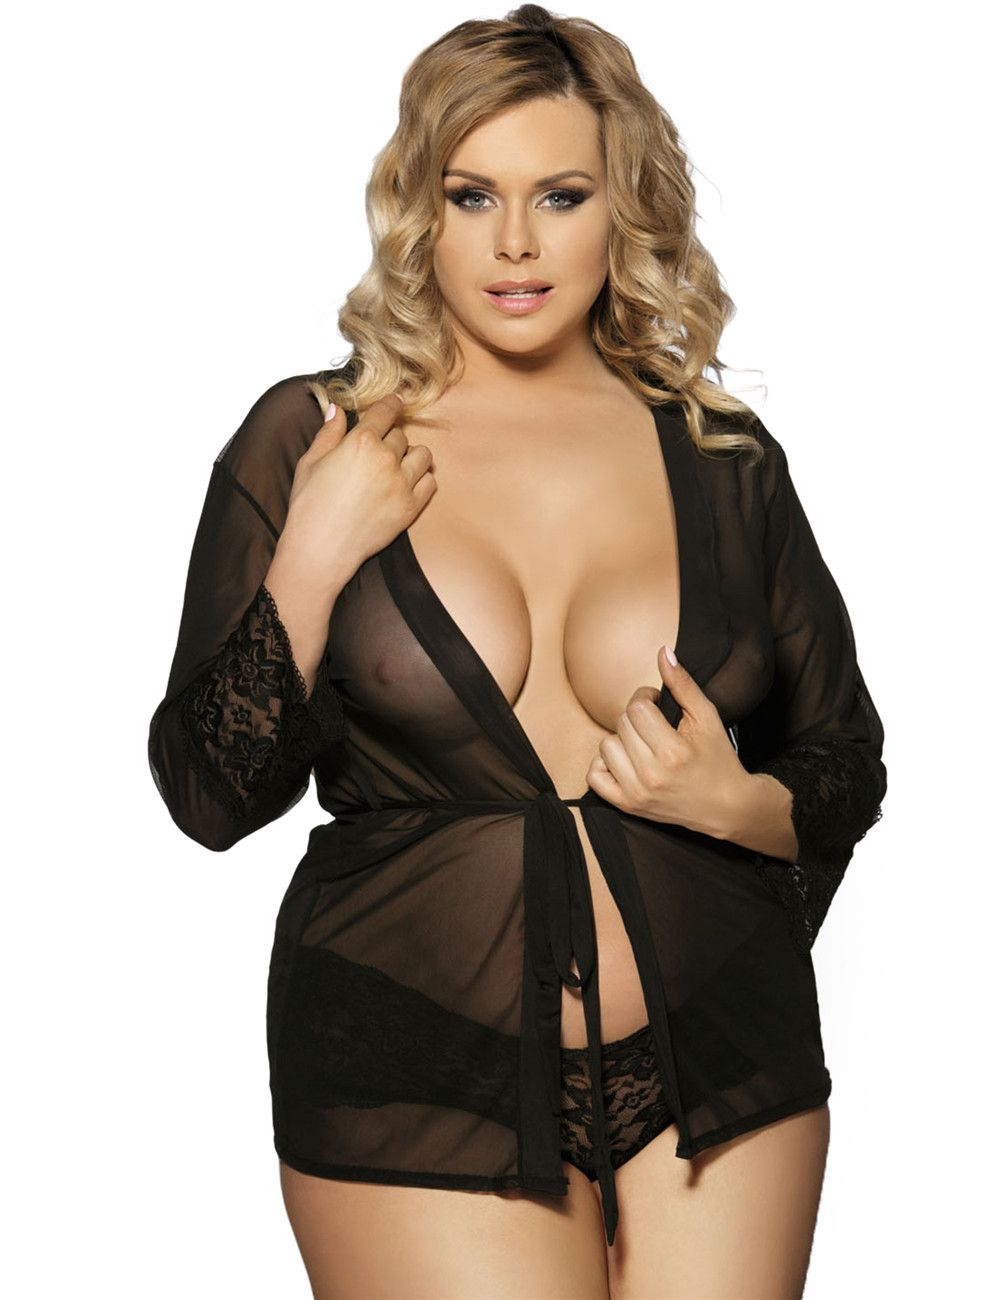 9c3aa8675e3 Plus Size black Babydoll   Lingerie For Fat Women From  imsexy4u.com ...